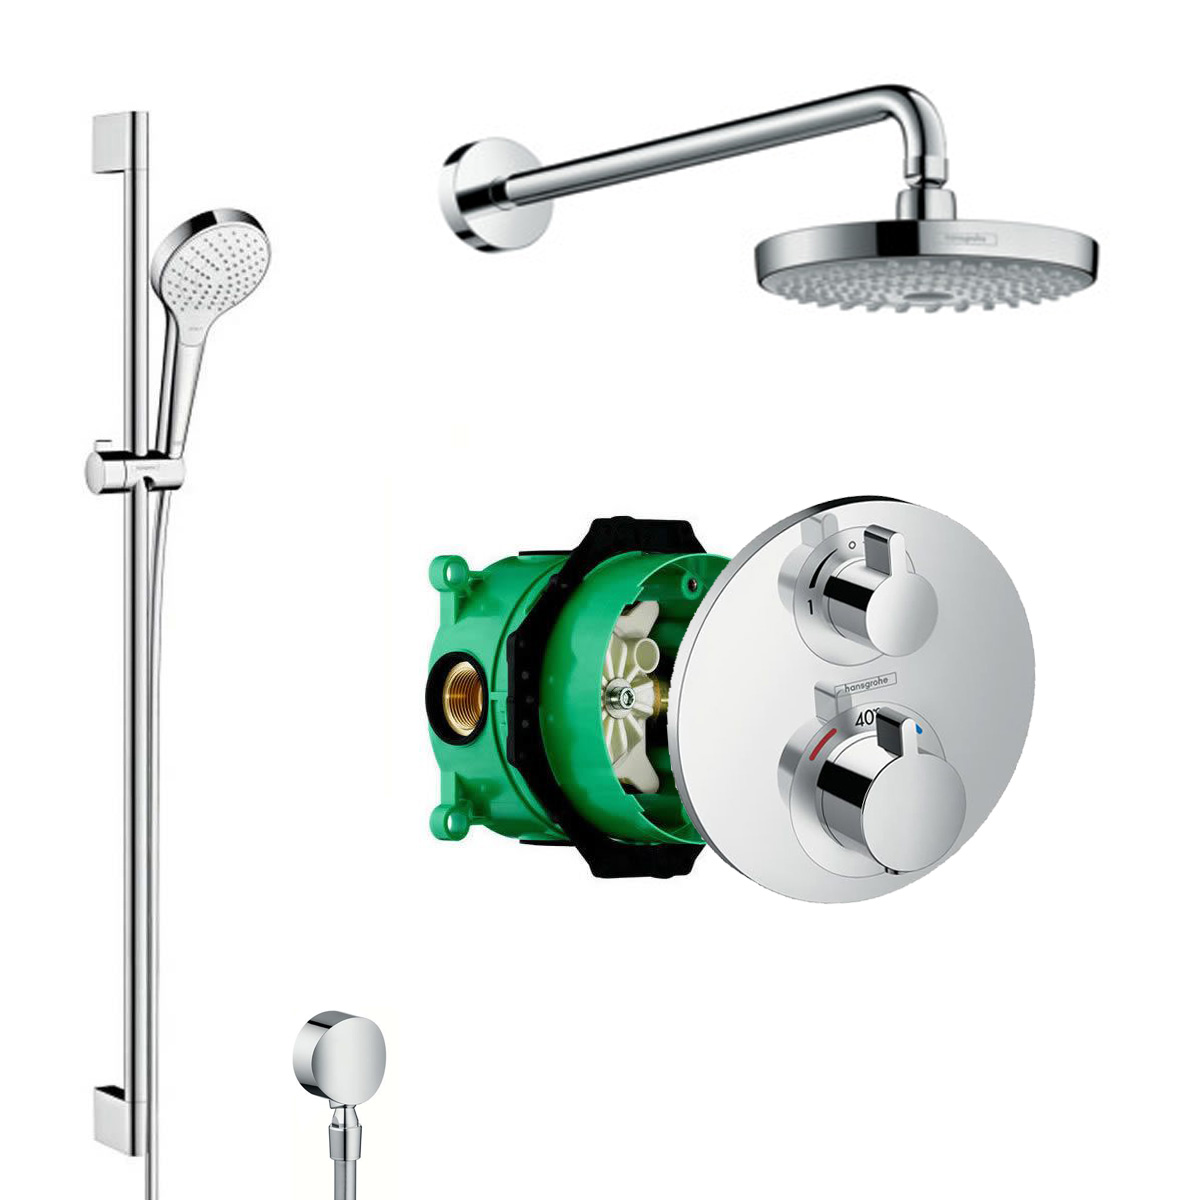 Hansgrohe Ecostat S 88101001 Complete Valves Kits